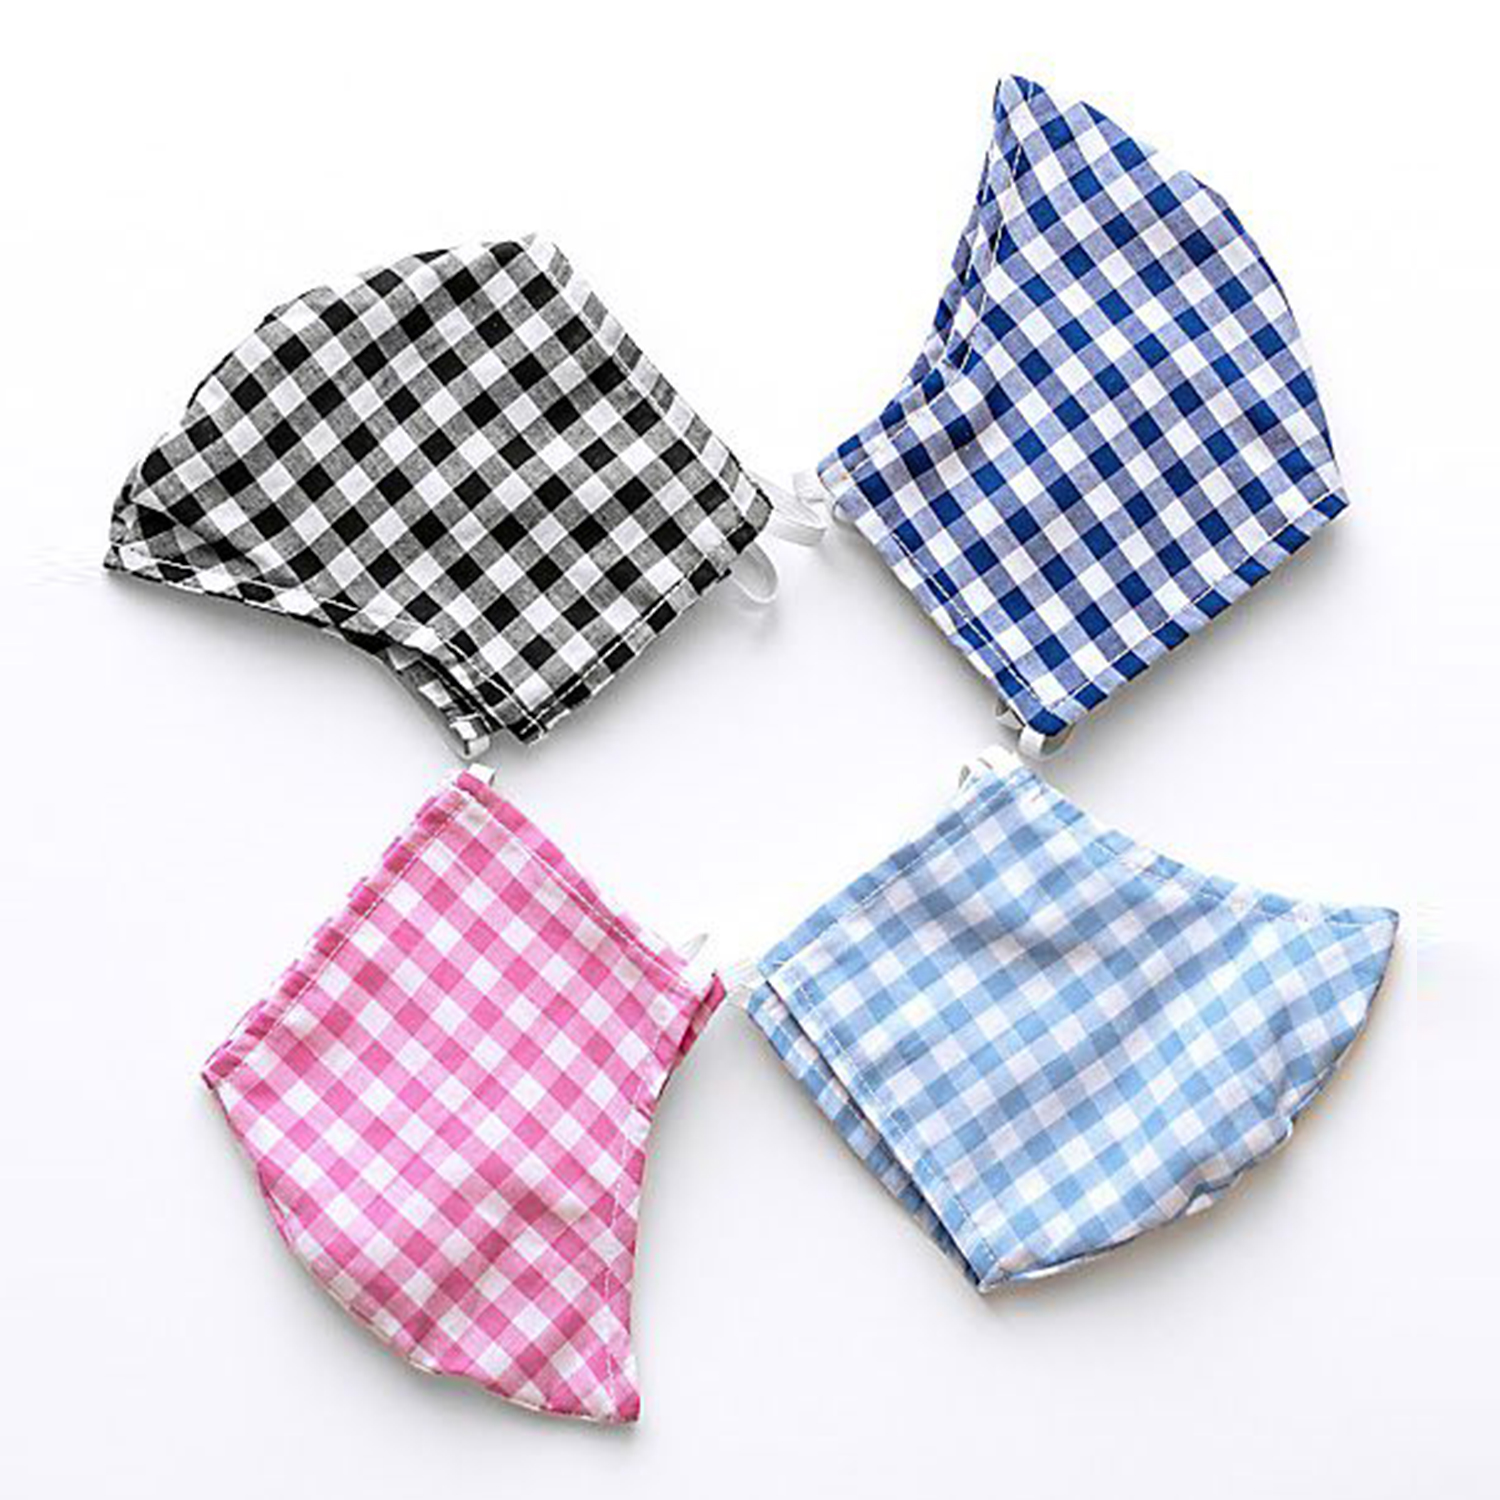 Anthropologie Amadi Gingham Reusable Face Mask